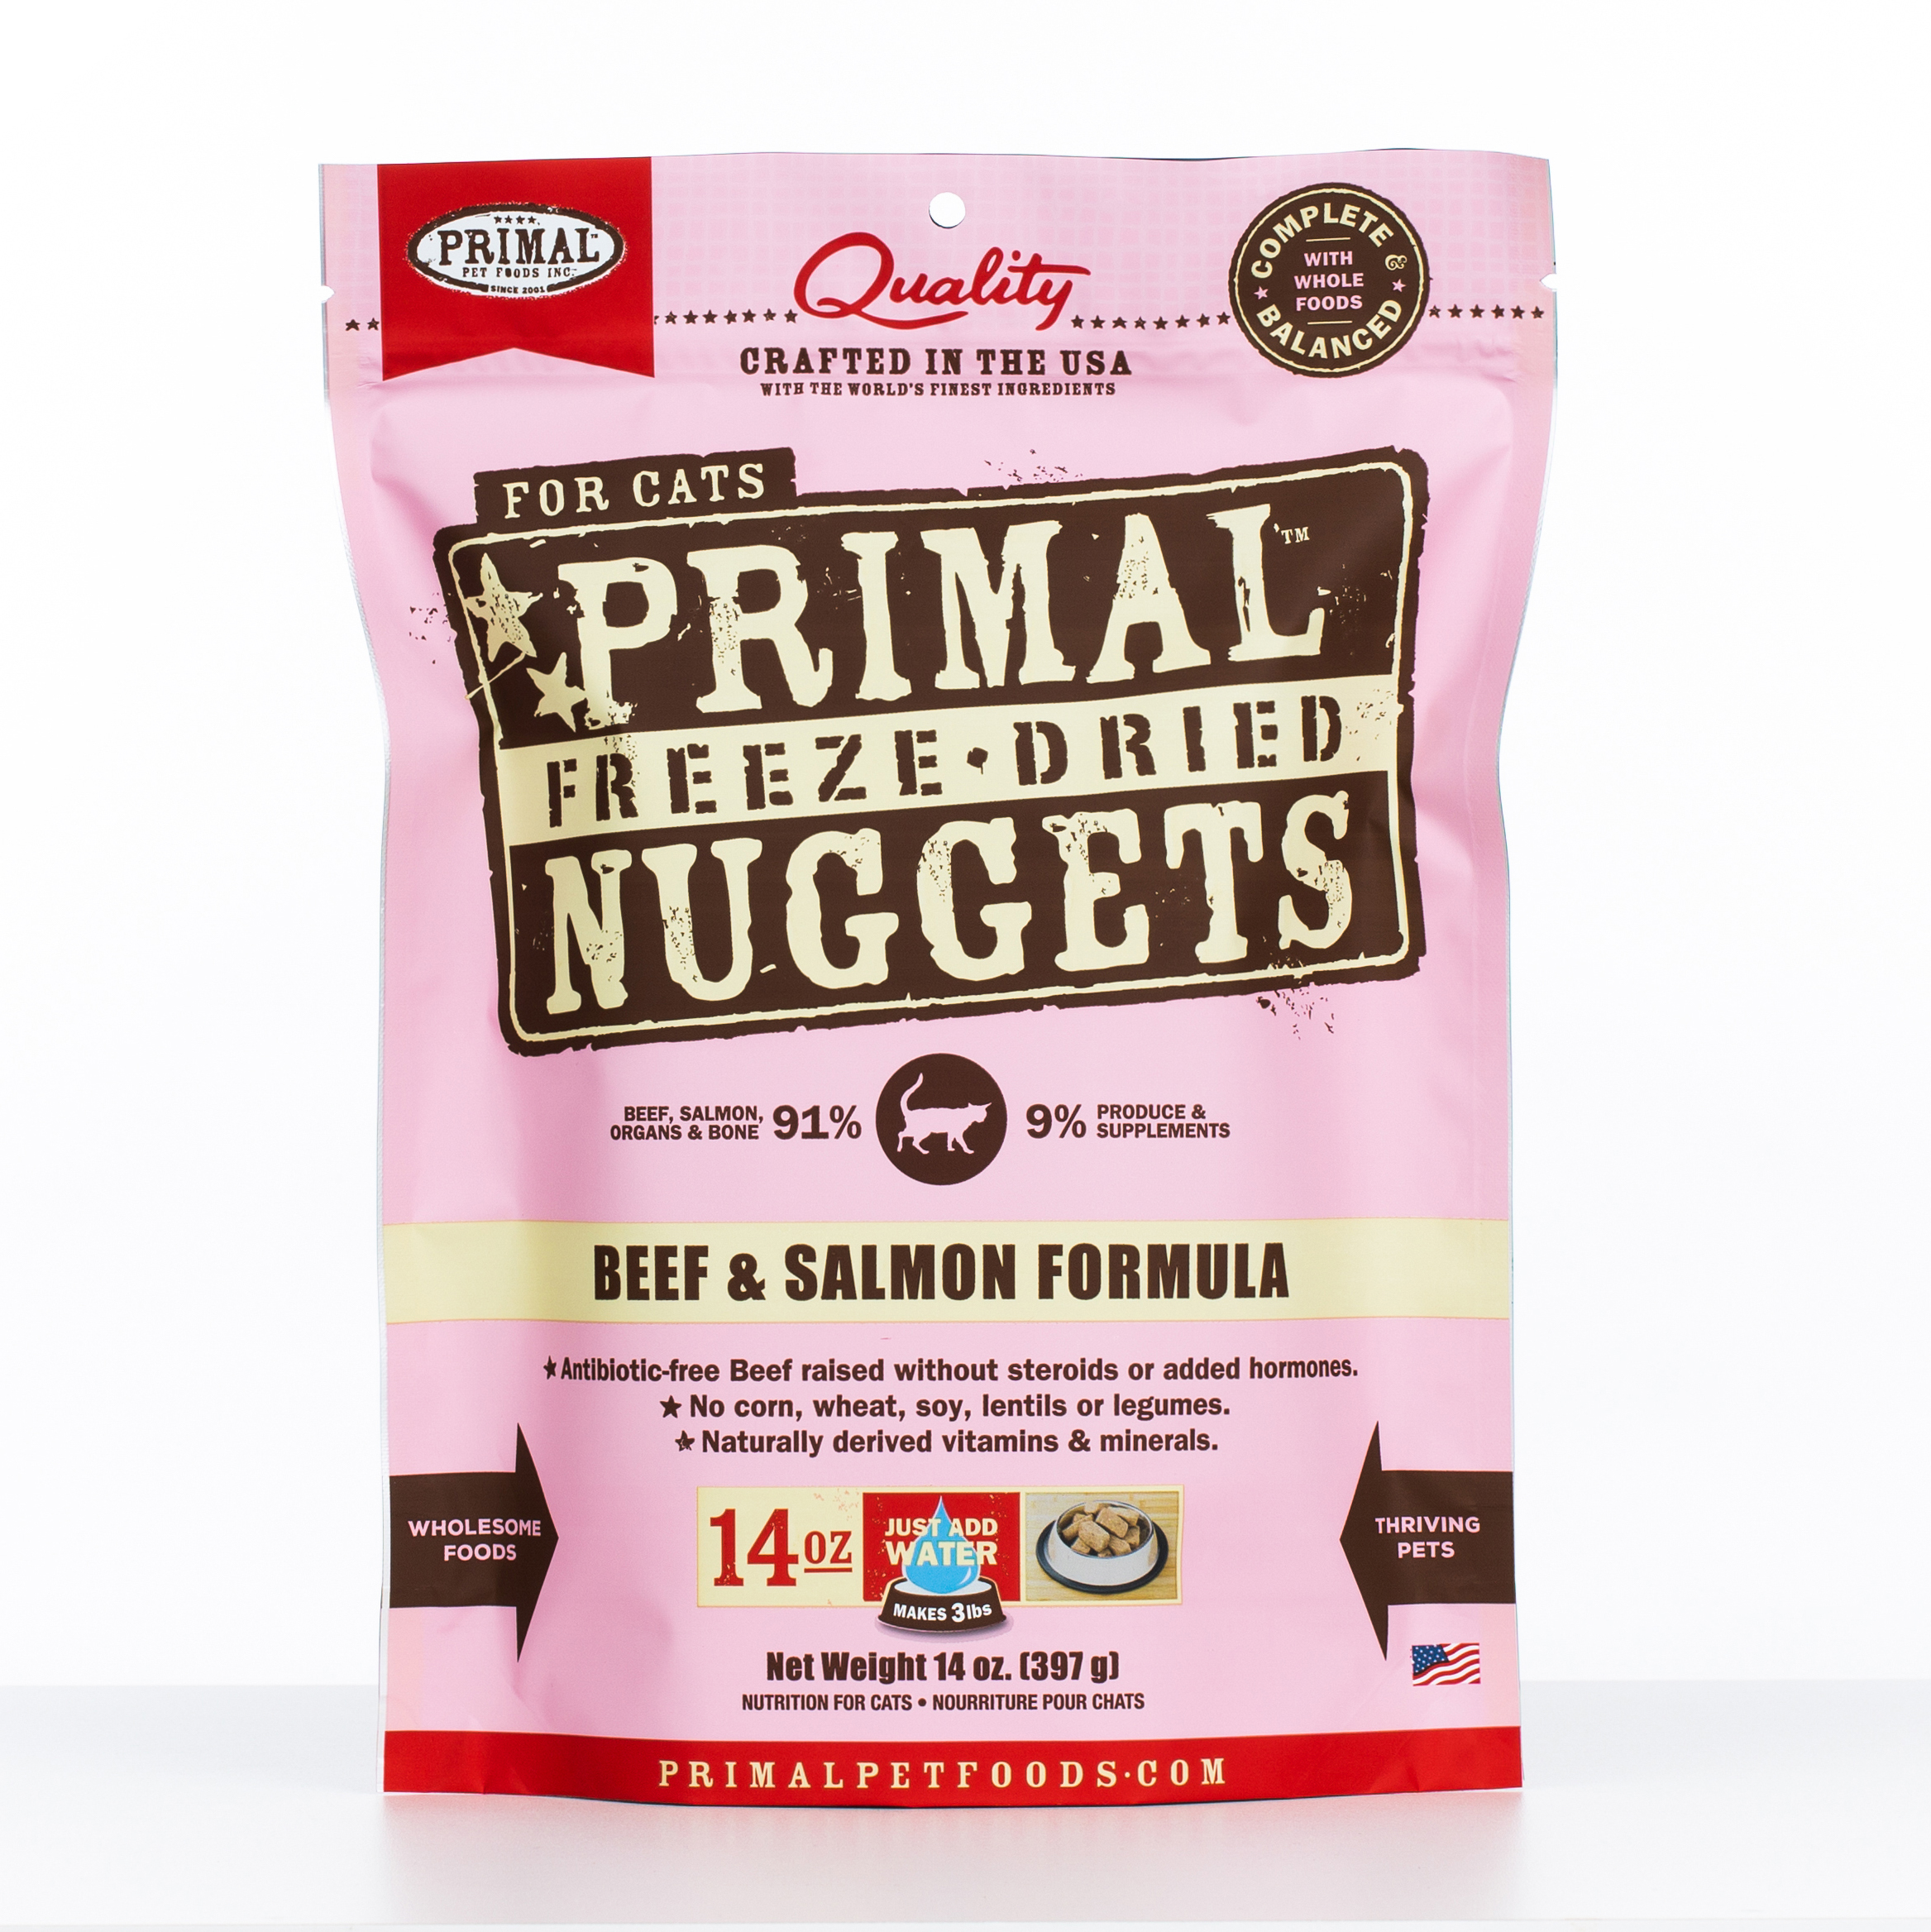 Primal Raw Freeze-Dried Nuggets Beef & Salmon Formula Cat Food, 14-oz bag Size: 14-oz bag, Weights: 14ounces